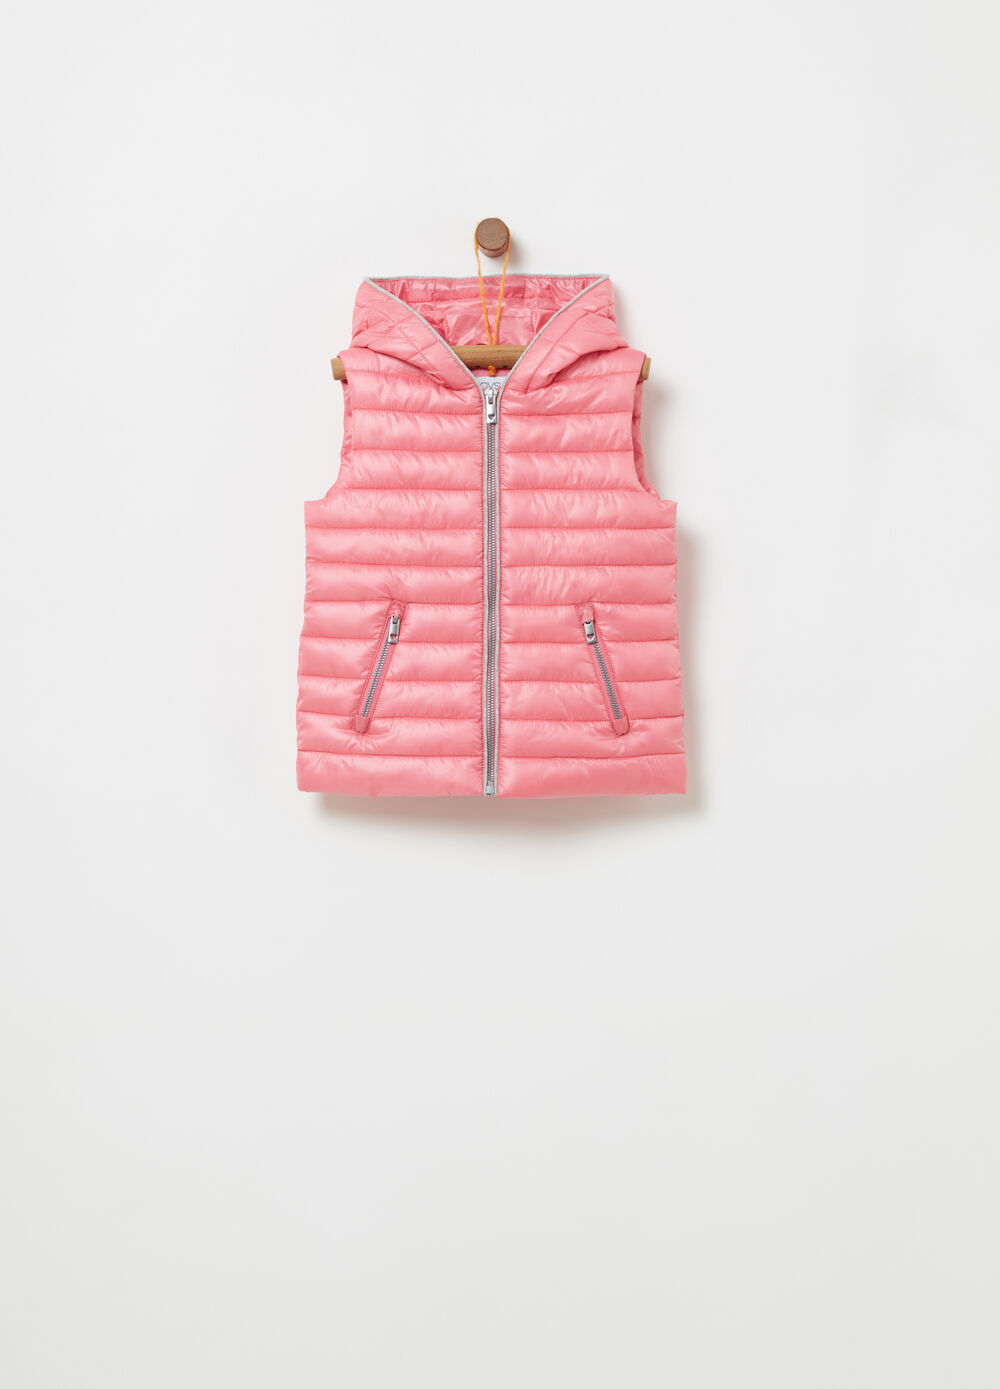 Padded gilet with zip pockets